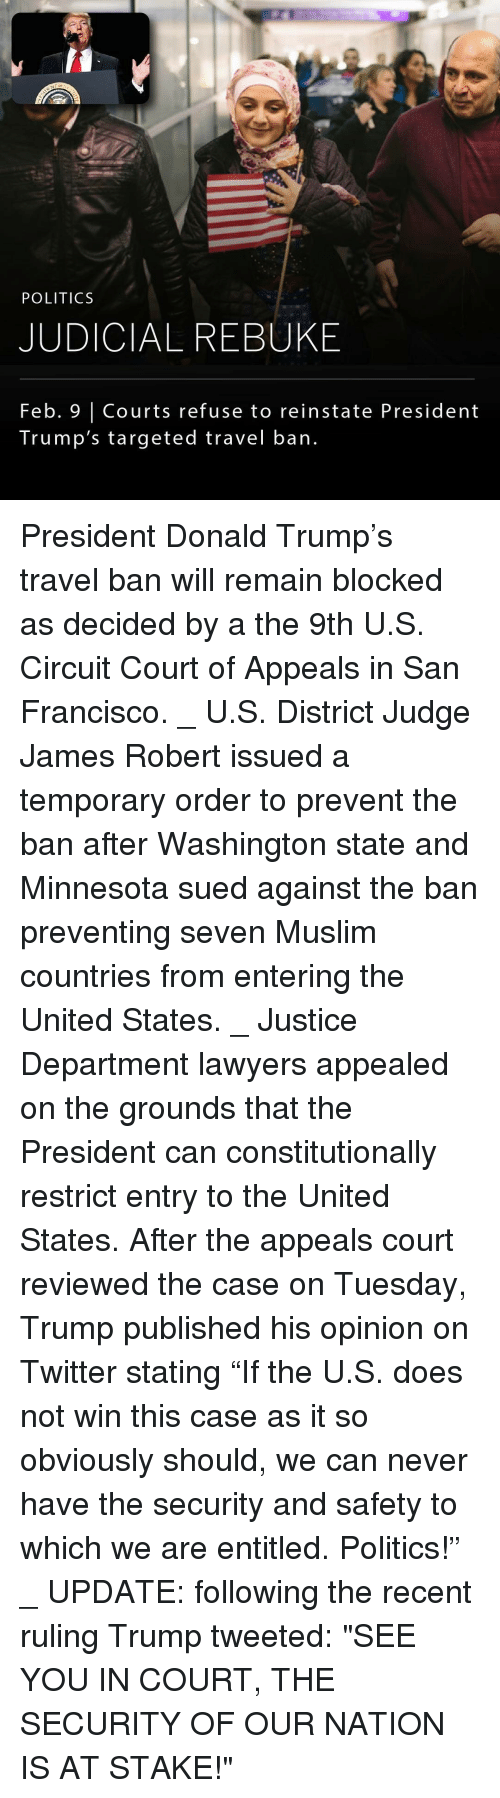 "Memes, San Francisco, and 🤖: POLITICS  JUDICIAL REBUKE  Feb. Courts refuse to reinstate President  Trump's targeted travel ban. President Donald Trump's travel ban will remain blocked as decided by a the 9th U.S. Circuit Court of Appeals in San Francisco. _ U.S. District Judge James Robert issued a temporary order to prevent the ban after Washington state and Minnesota sued against the ban preventing seven Muslim countries from entering the United States. _ Justice Department lawyers appealed on the grounds that the President can constitutionally restrict entry to the United States. After the appeals court reviewed the case on Tuesday, Trump published his opinion on Twitter stating ""If the U.S. does not win this case as it so obviously should, we can never have the security and safety to which we are entitled. Politics!"" _ UPDATE: following the recent ruling Trump tweeted: ""SEE YOU IN COURT, THE SECURITY OF OUR NATION IS AT STAKE!"""